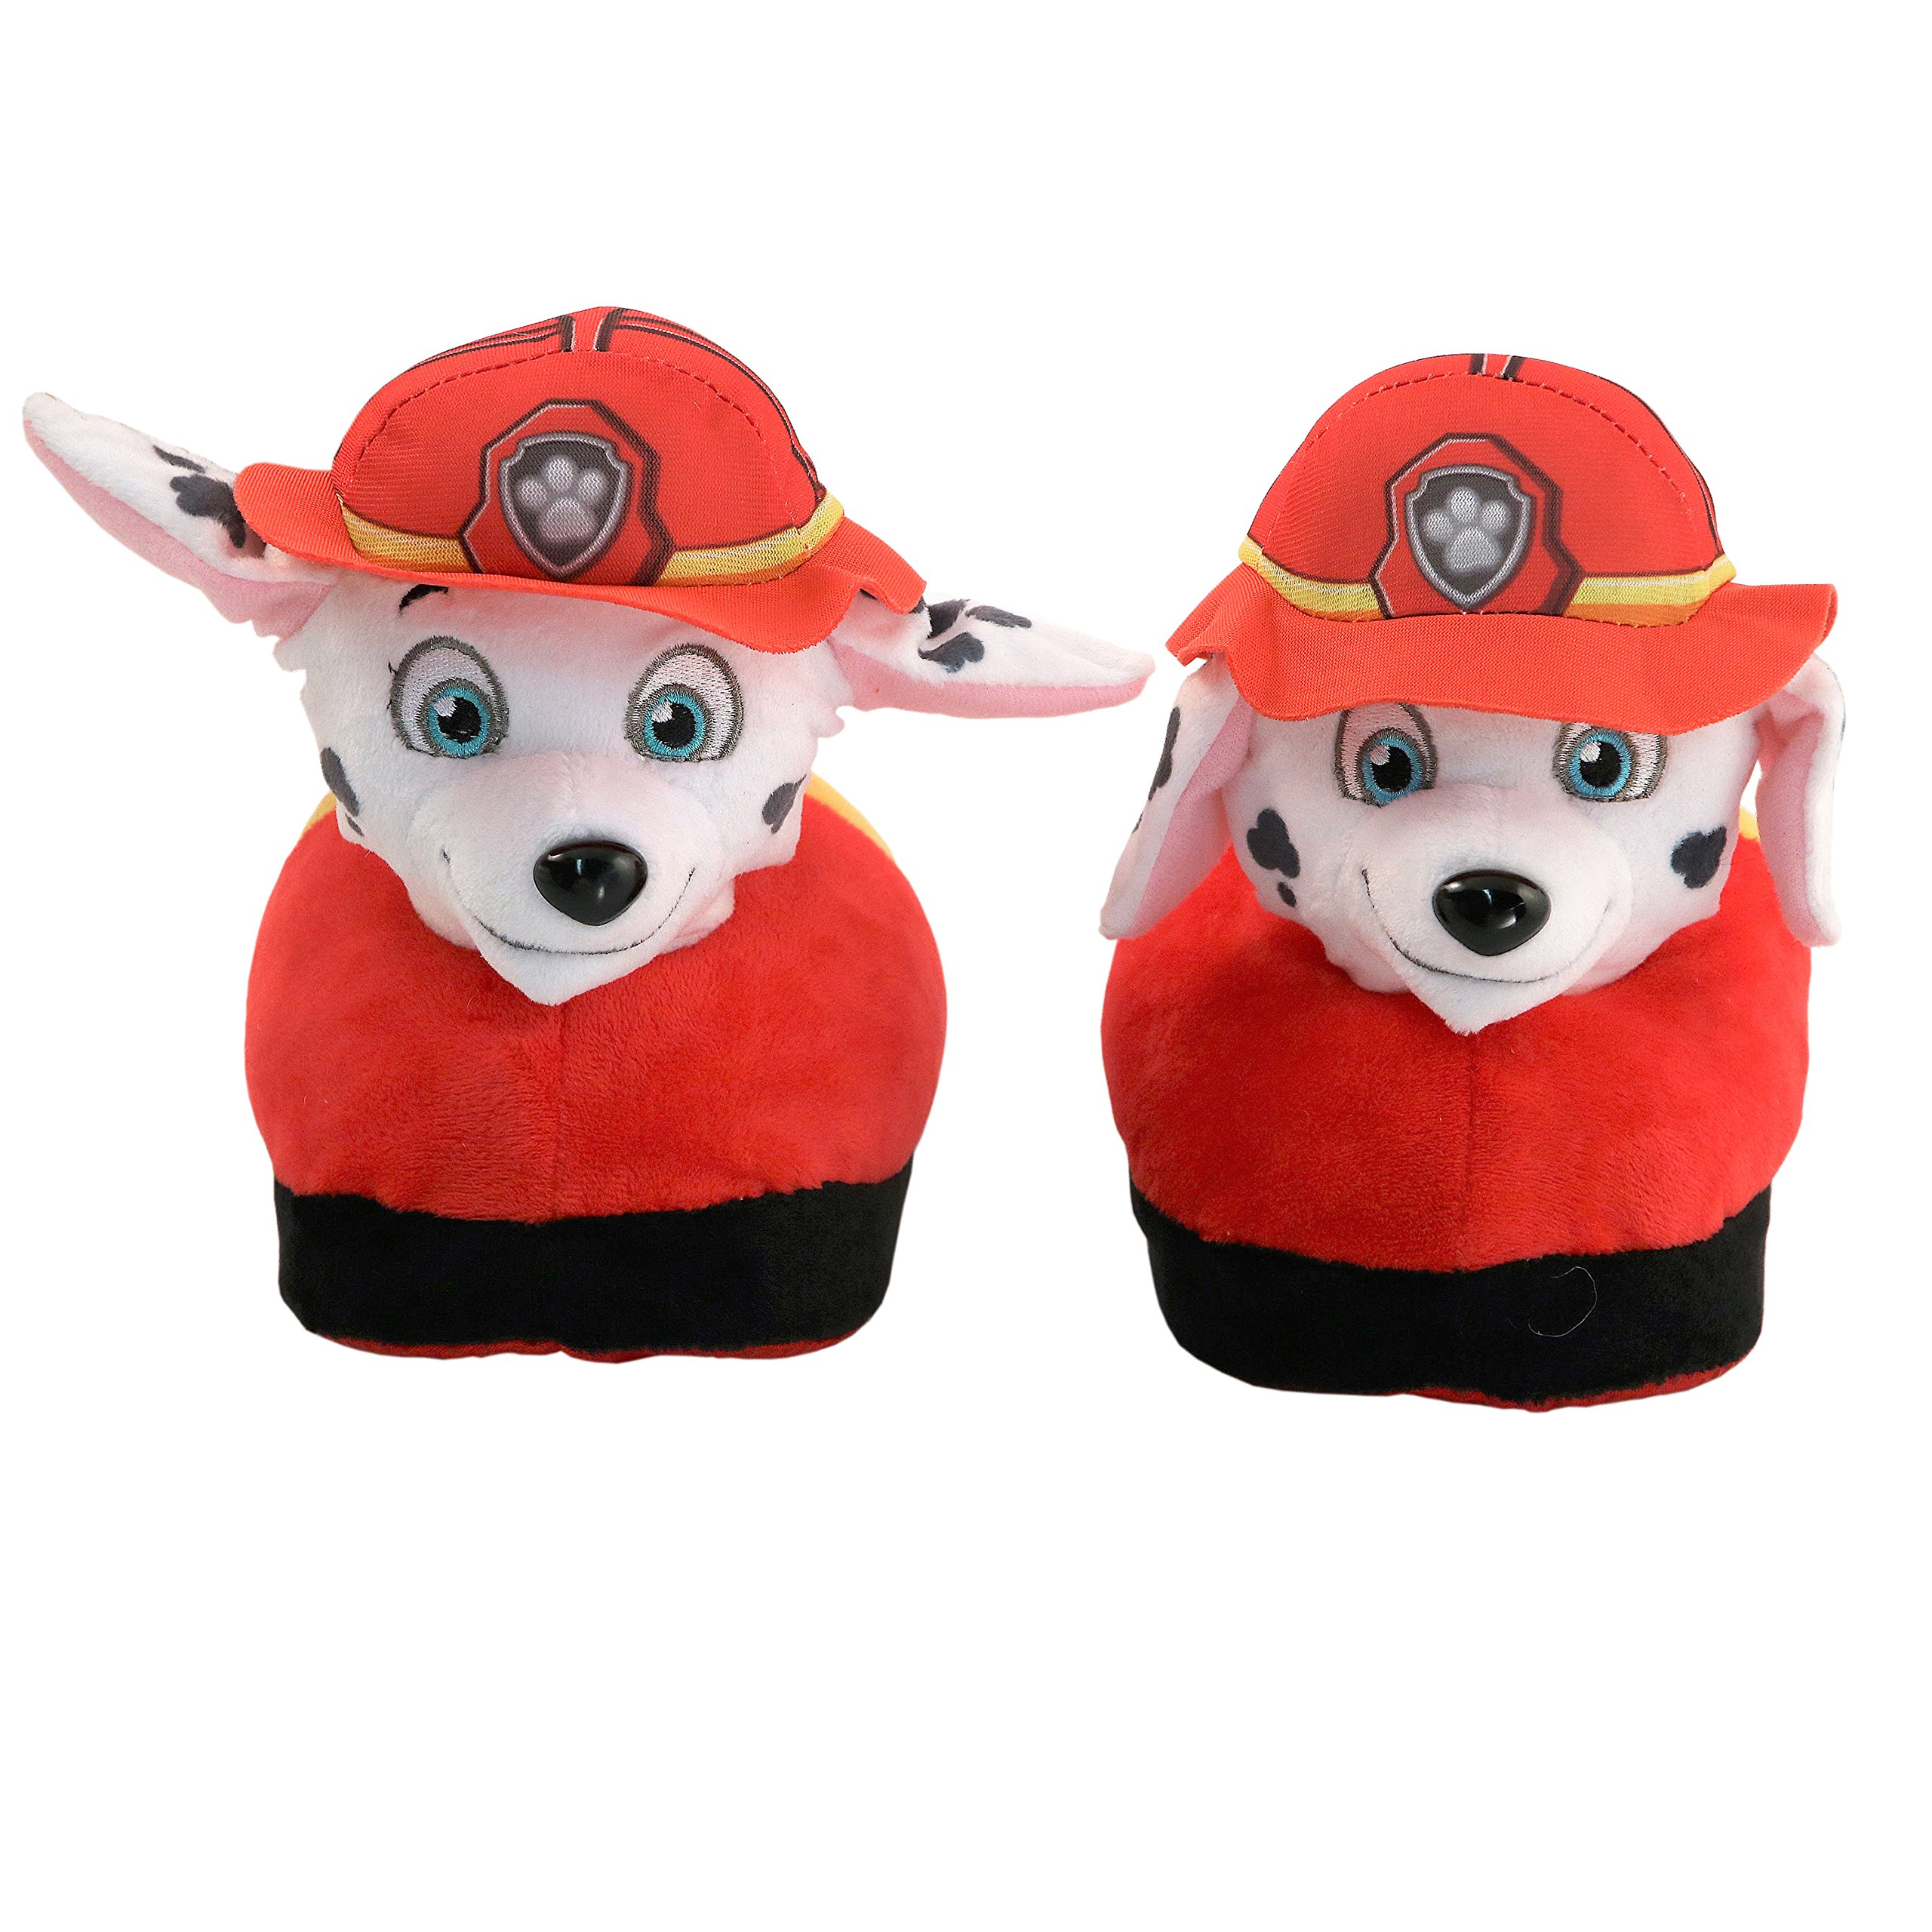 Stompeez Animated Marshal Plush Slippers - Ultra Soft and Fuzzy - Nickelodeon PAW Patrol Character - Ears Move as You Walk - Small